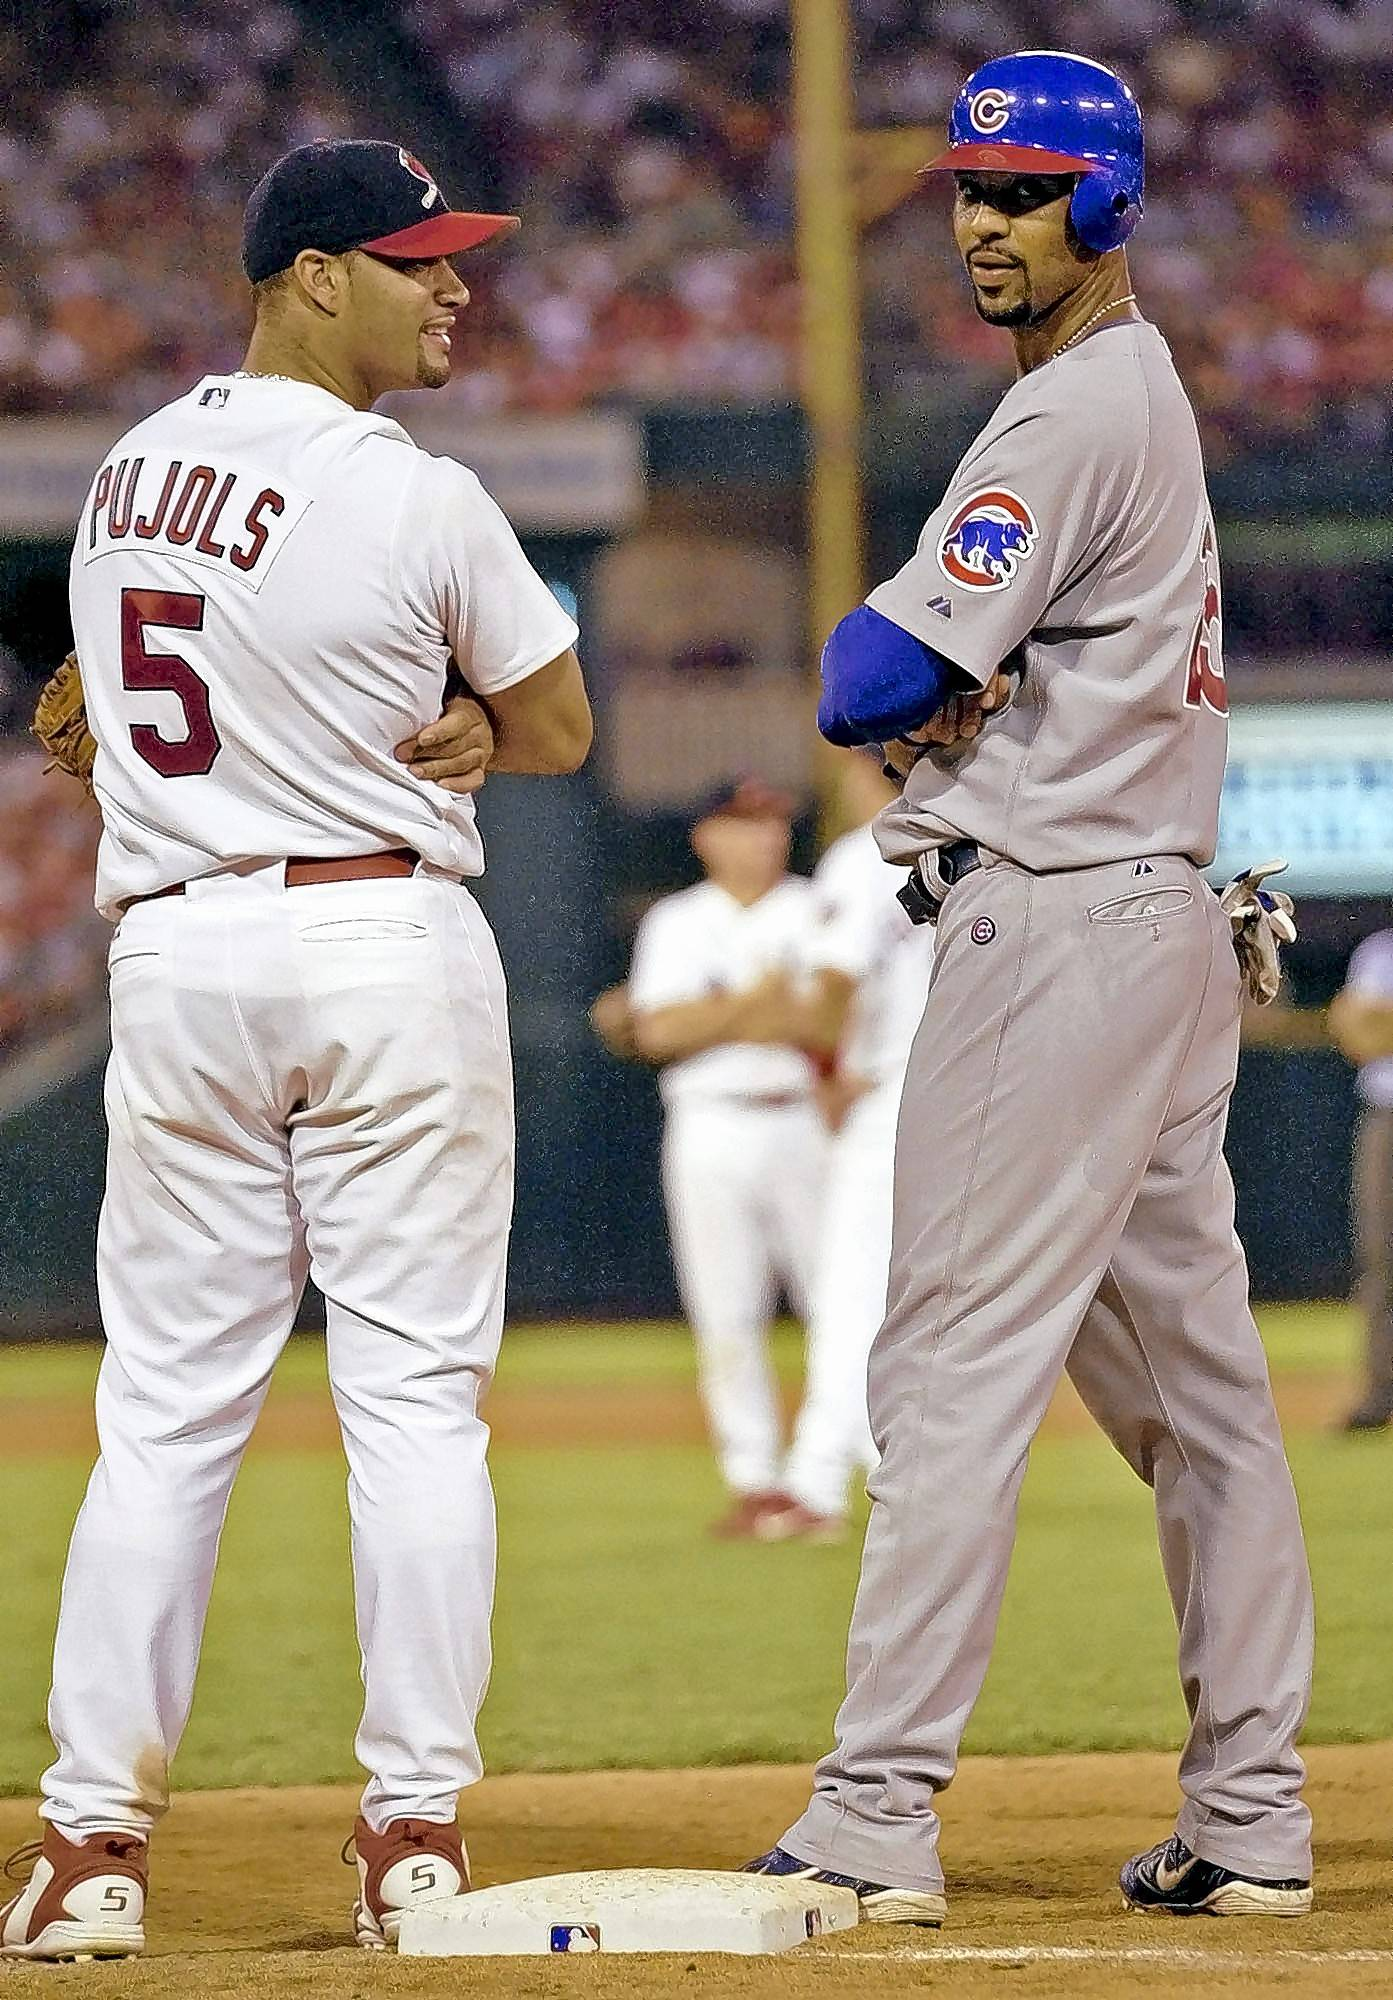 McKnight: Cubs-Cardinals rivalry has lots of special moments